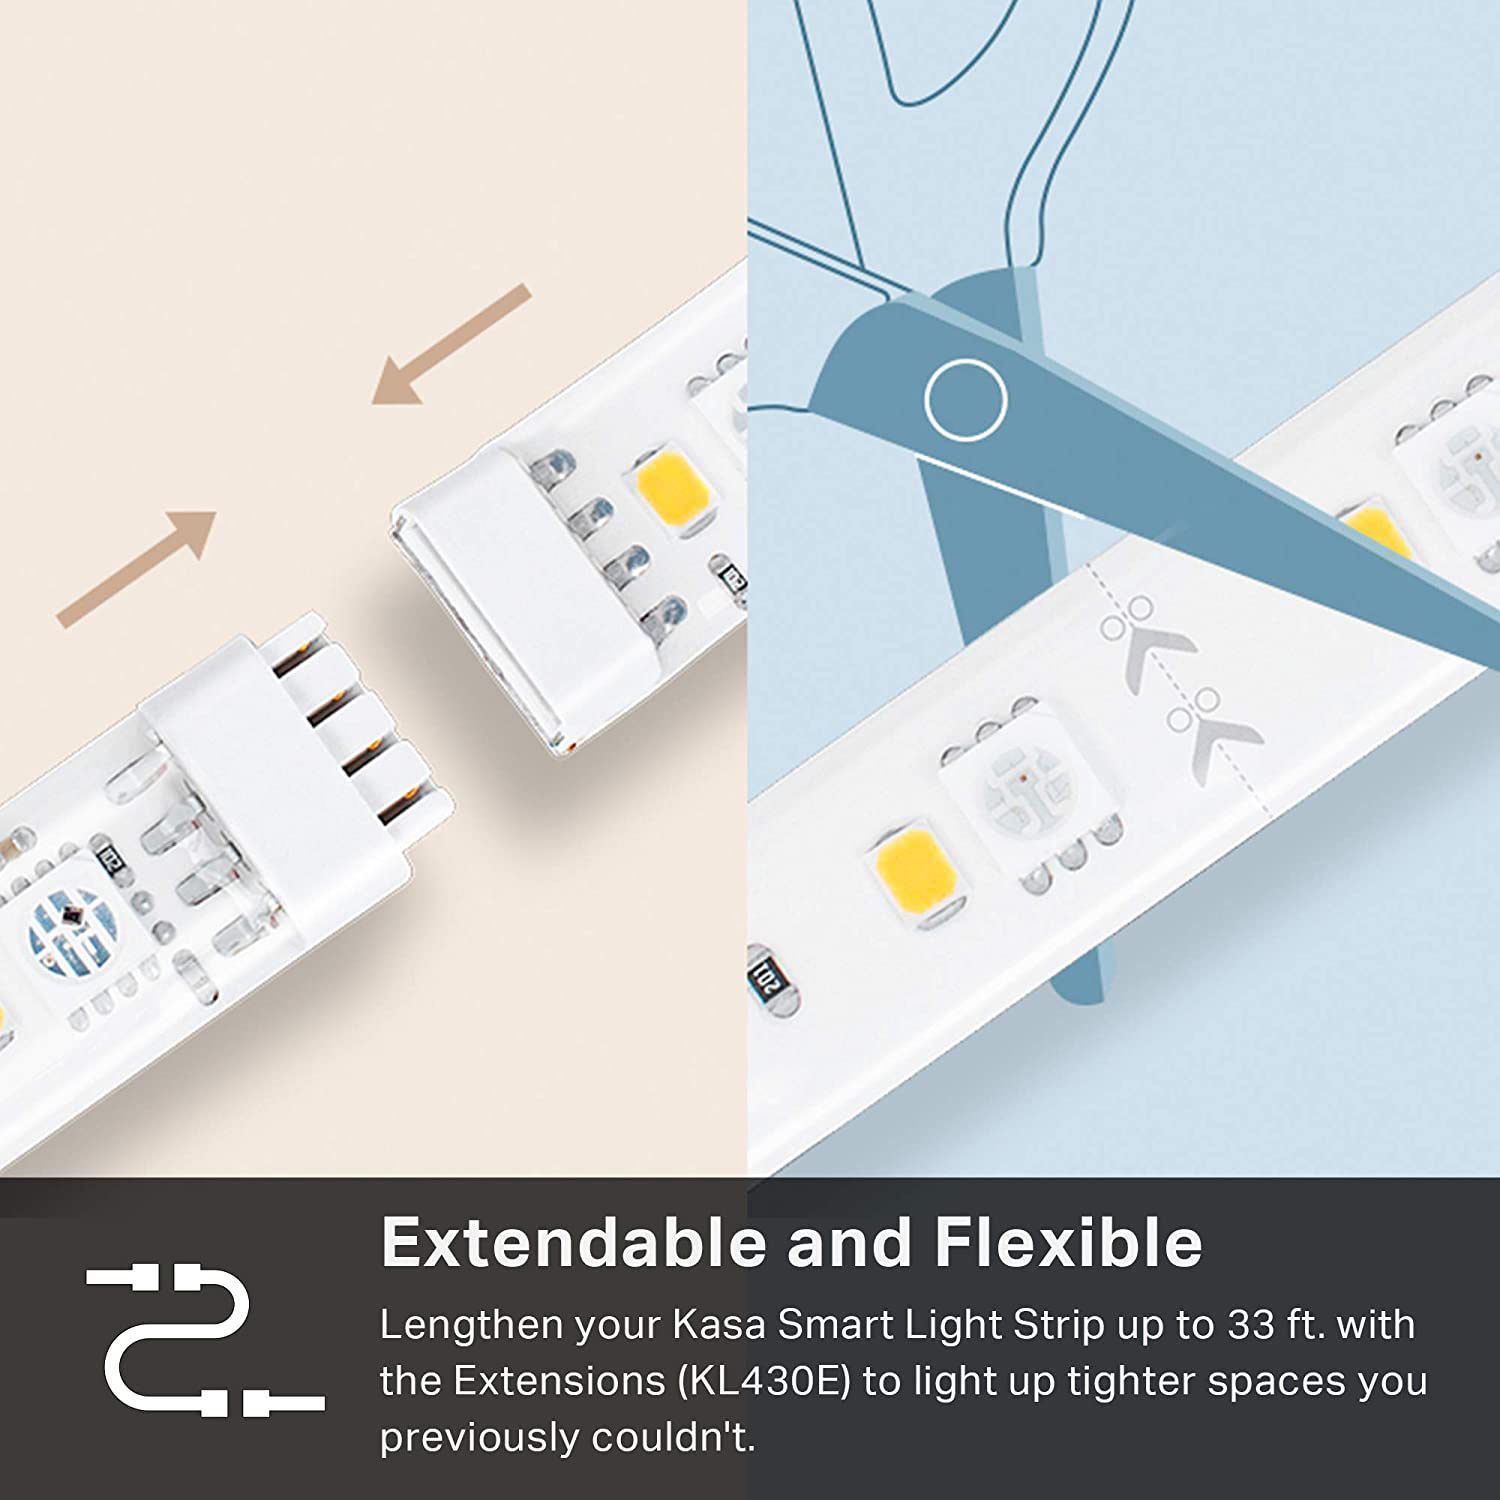 You connect the TP-Link Kasa Smart Light Strip to extension strips, with a small plug and you can cut them to length.